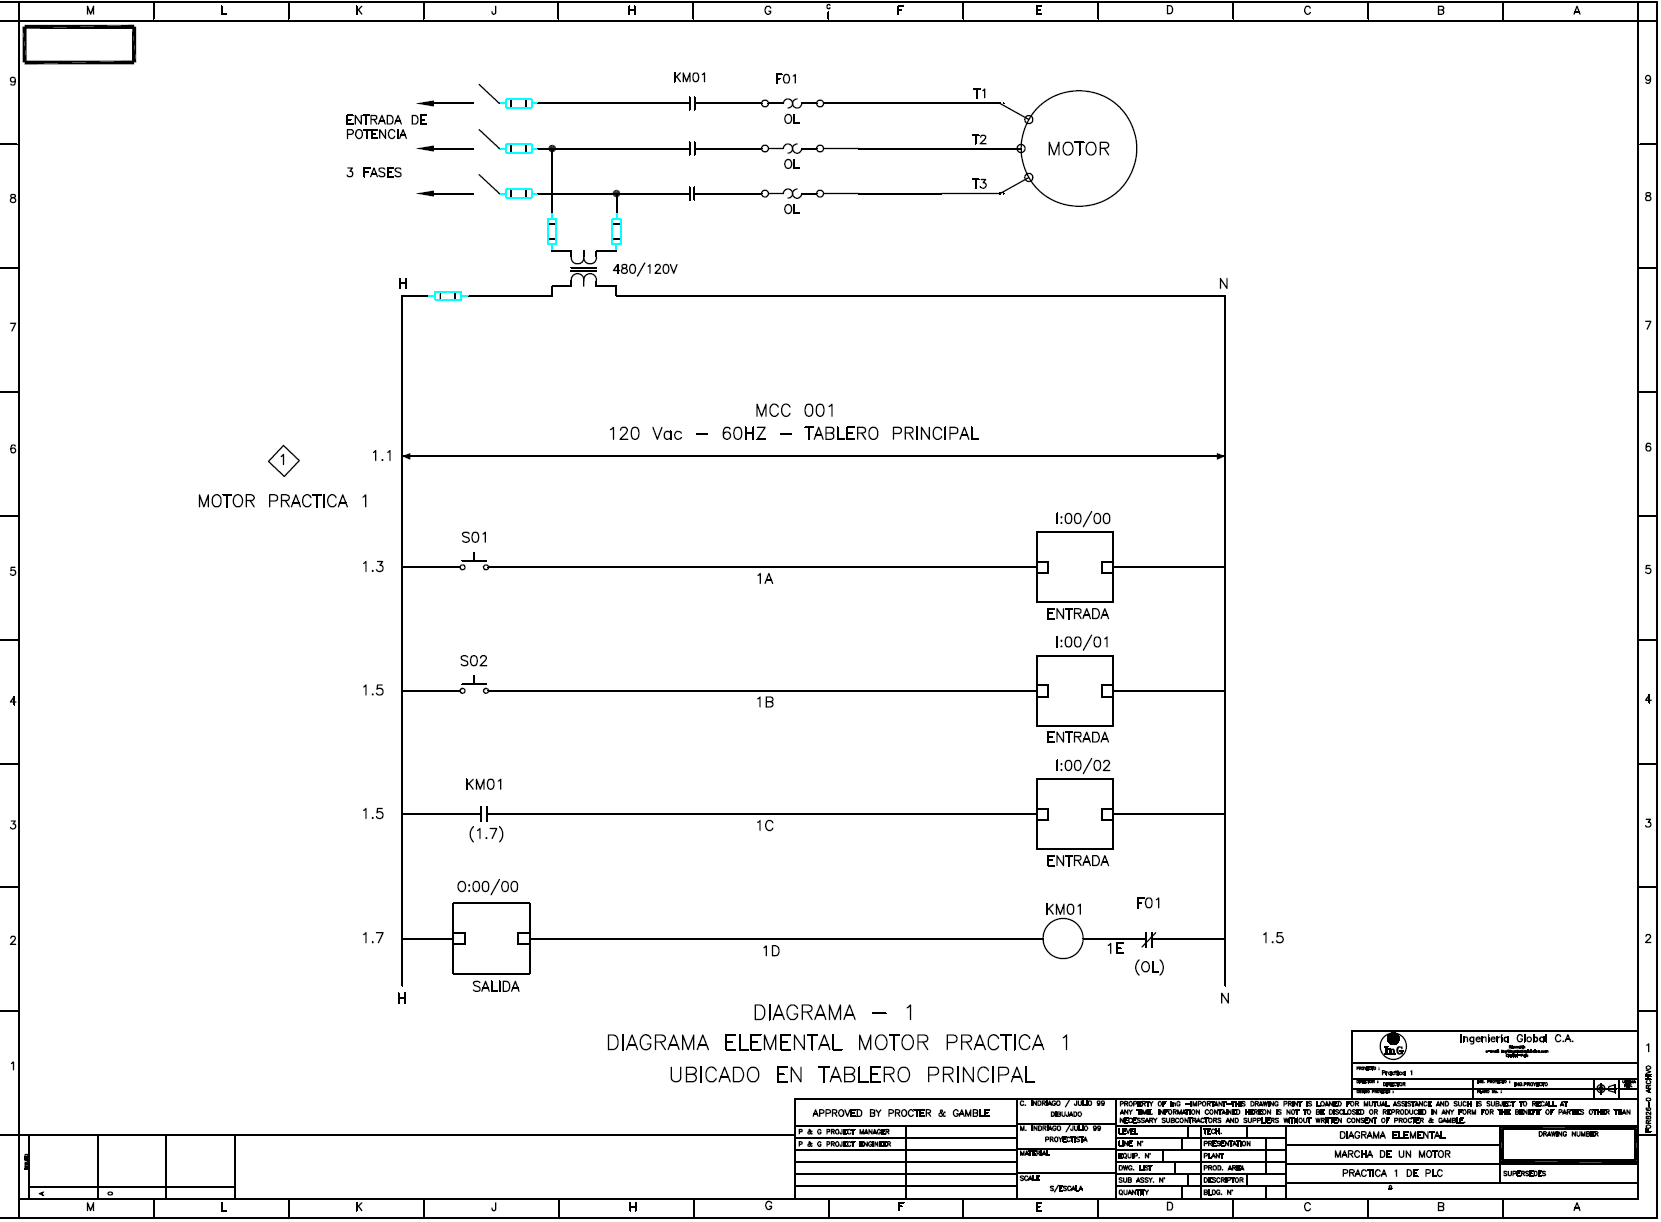 Ansi Standards Wiring Diagram Modern Design Of Way Switch On 4 Light Todays Rh 11 1 10 1813weddingbarn Com Multiple Lights Diagrams Single Line